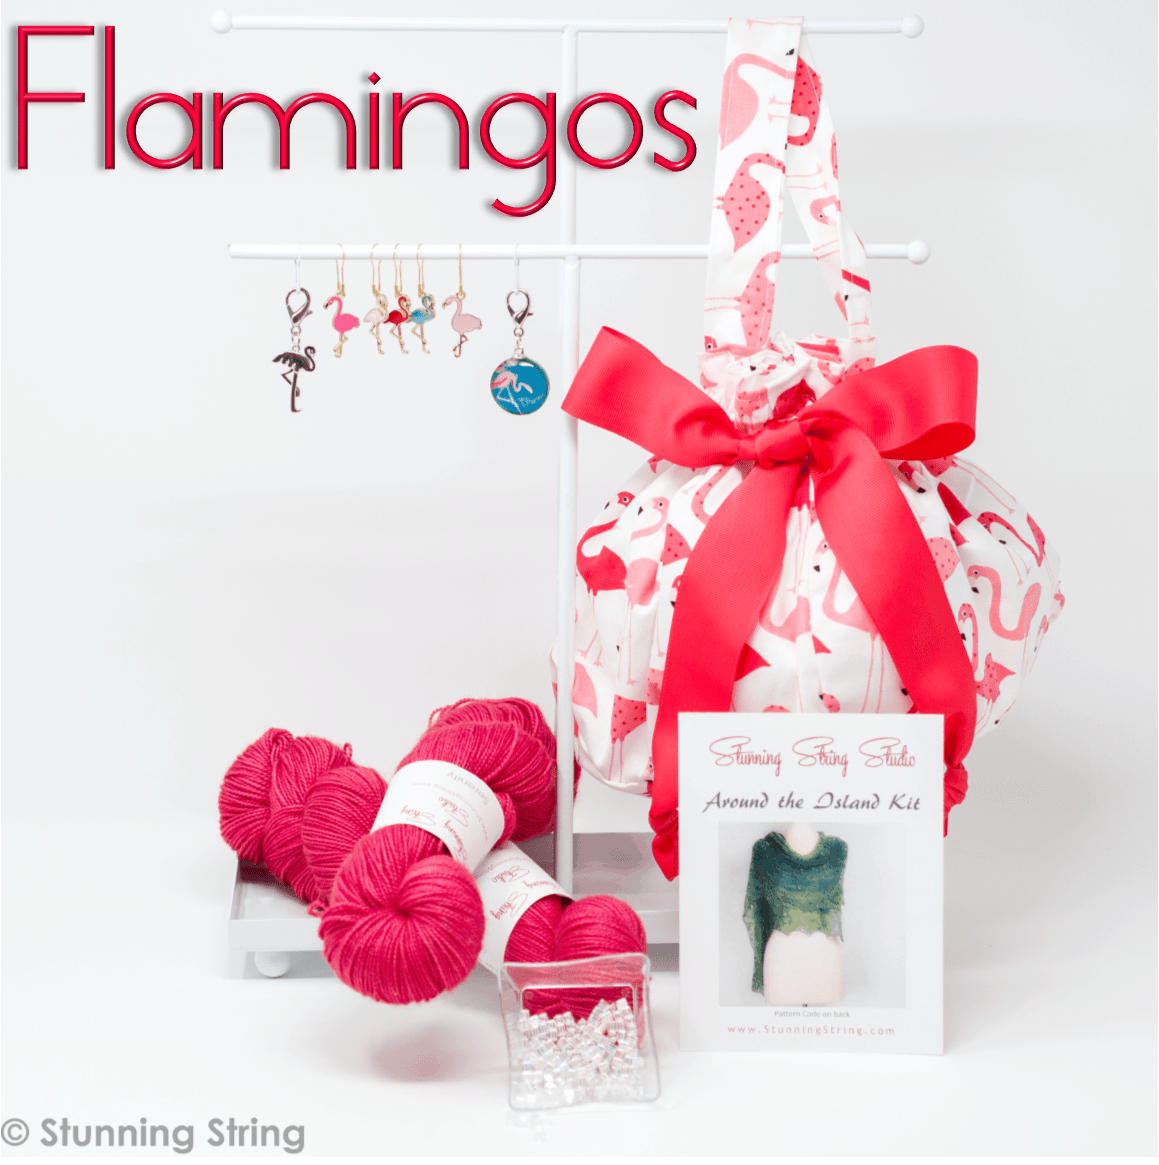 Flamingos Small Batch Kit